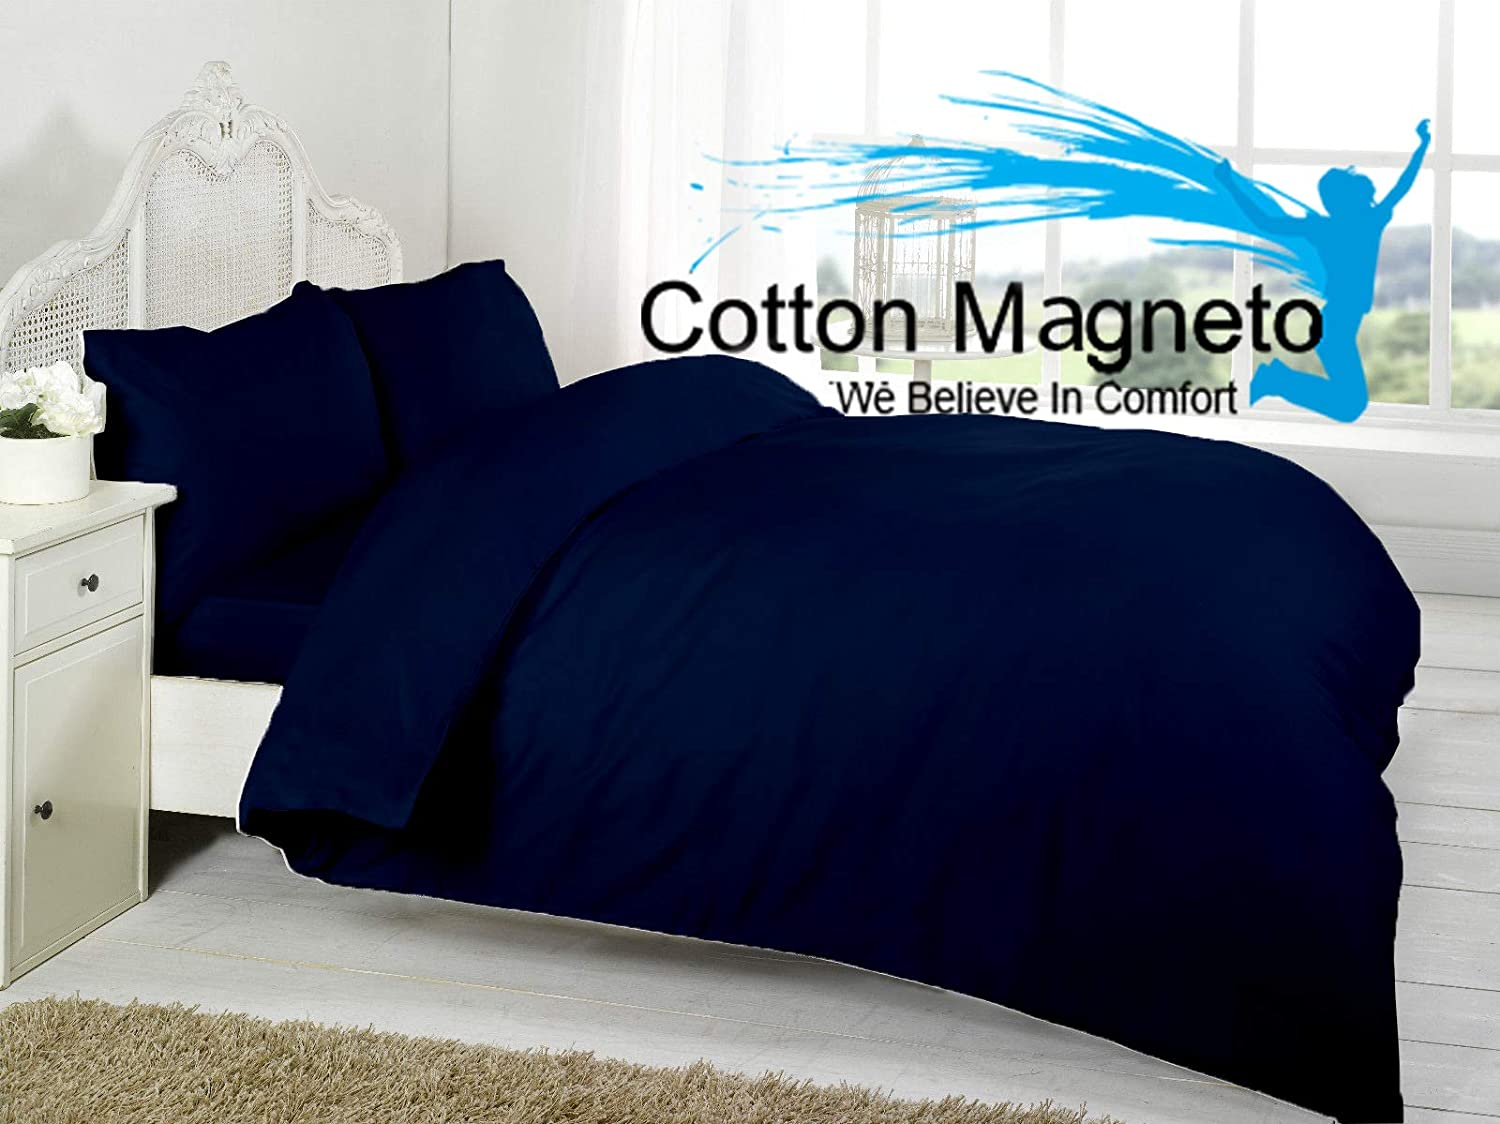 Cotton Magneto Duvet Cover Set 1000-TC Super Soft Luxury Crafted 100% Organic Cotton 3-PC Navy Blue Solid Queen Size 88x88 inch,Duvet Cover with Button Closer & 2pcs Pillow Covers